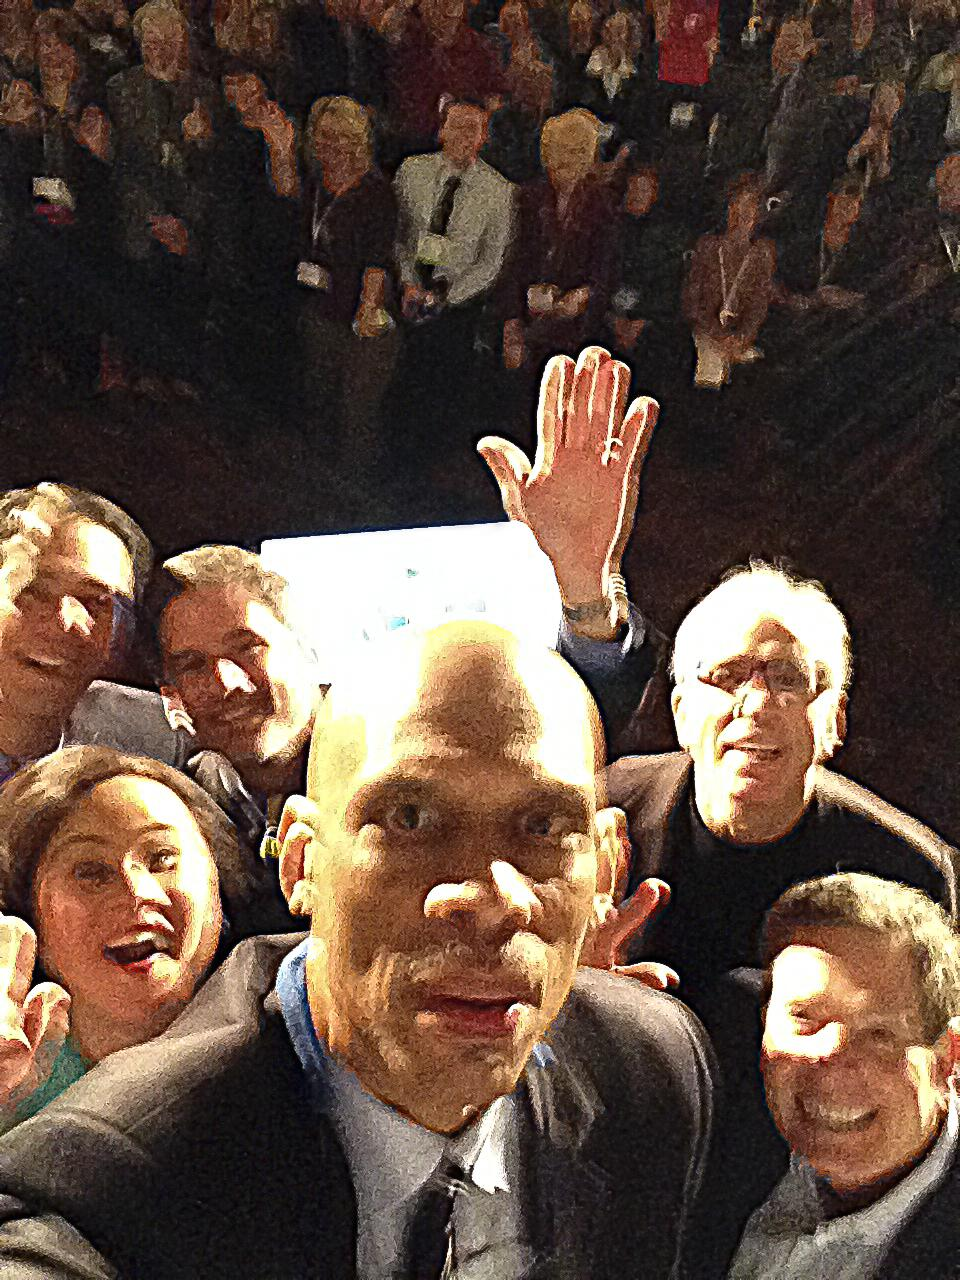 Twitter / TravelWI: If only @kaj33's arm was longer. ...